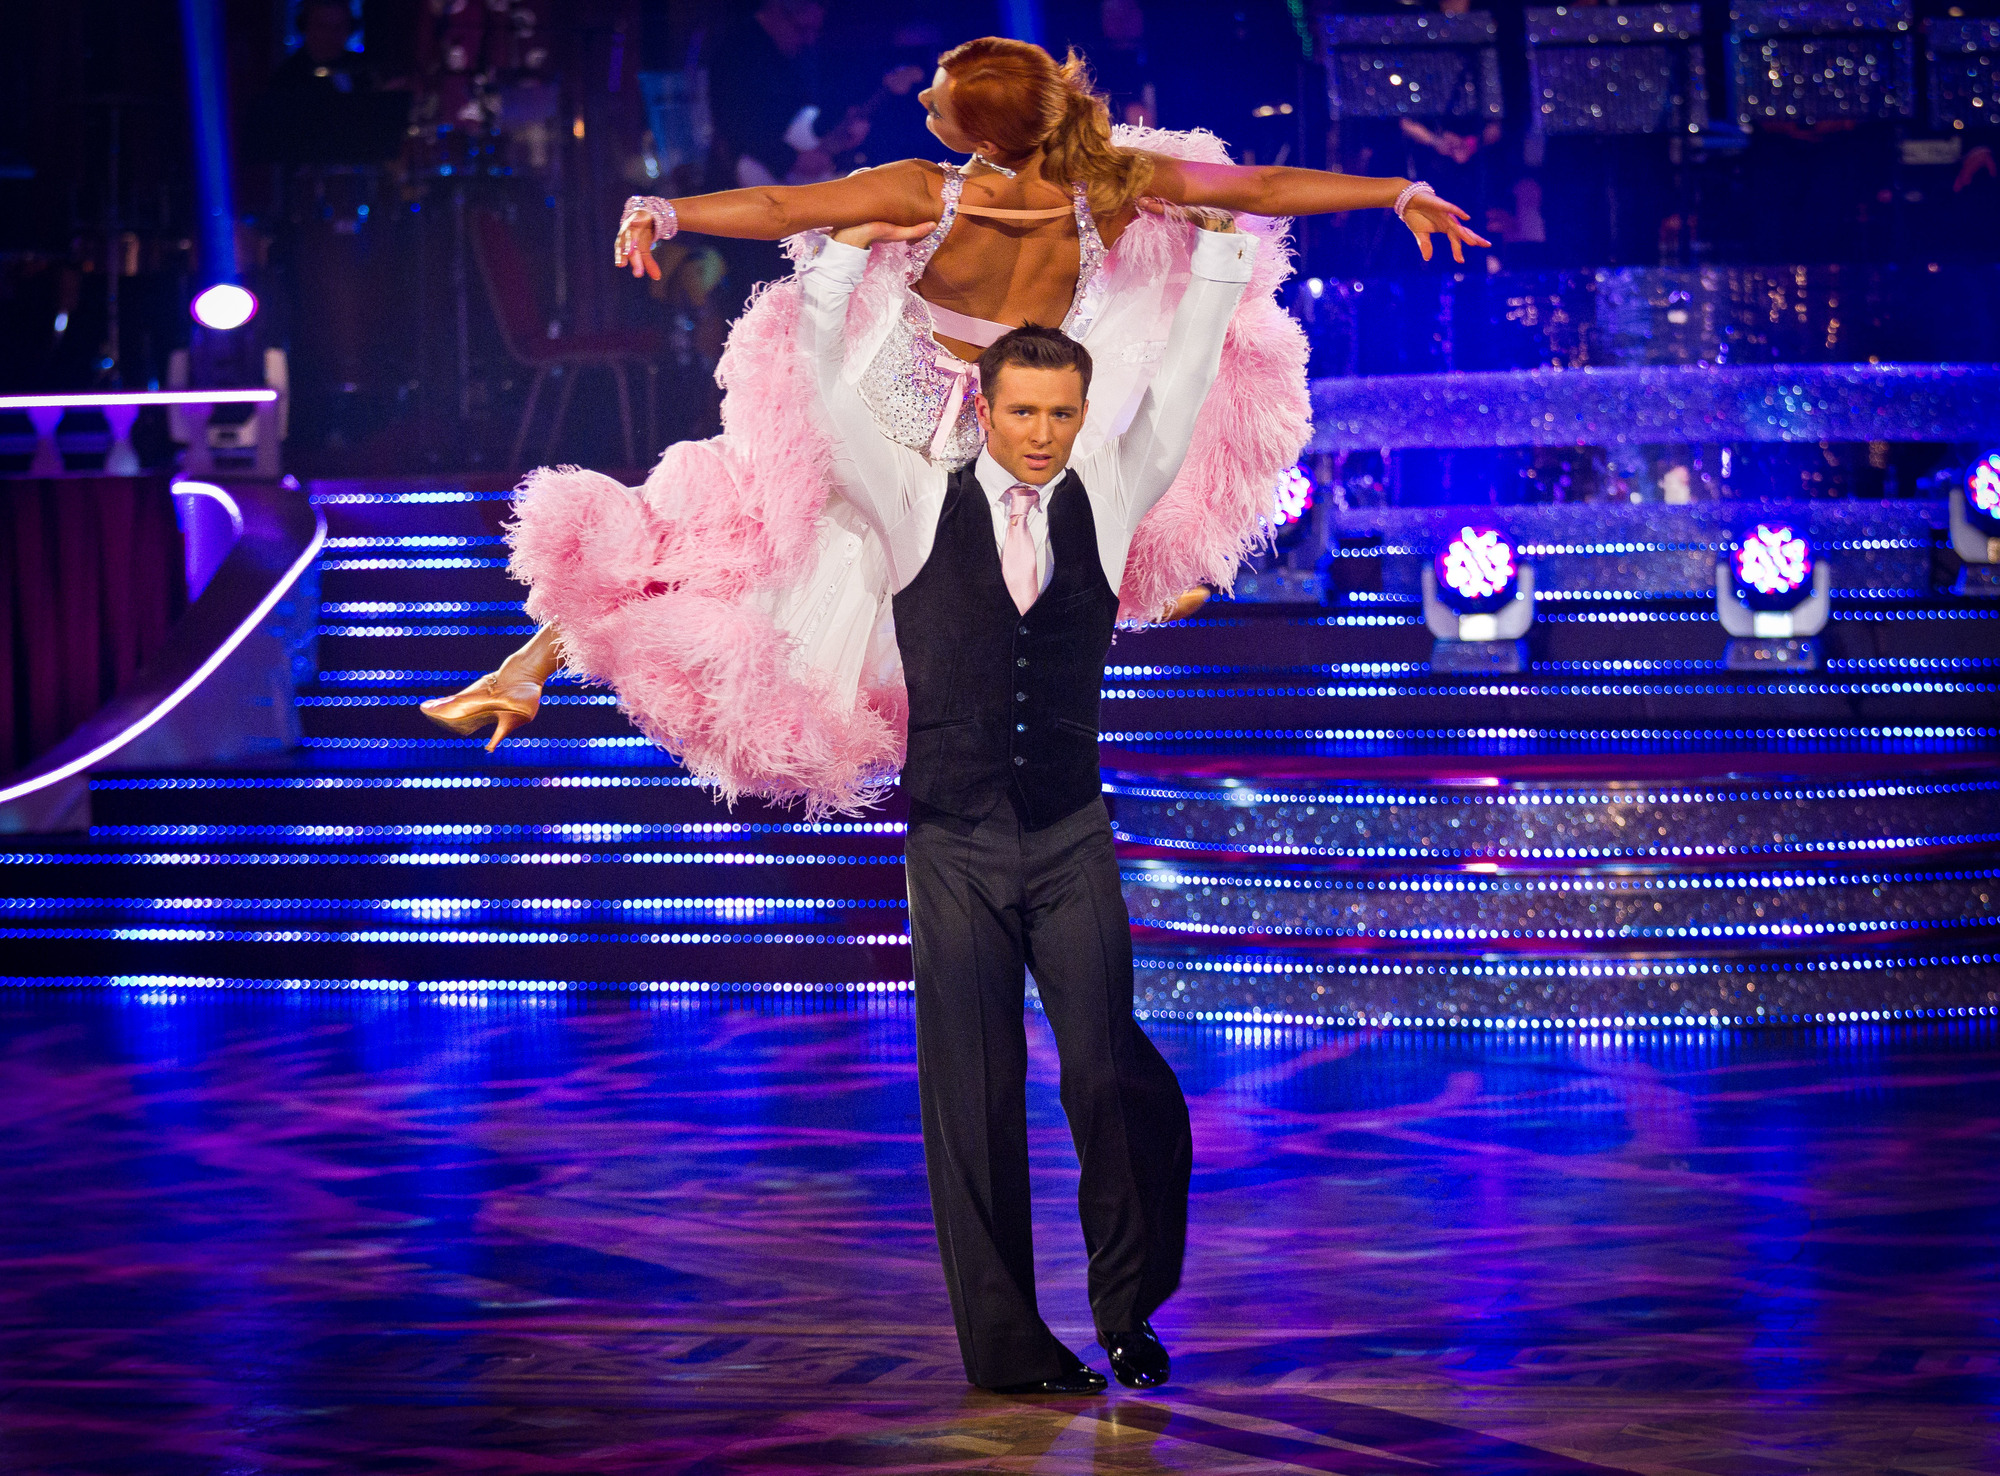 Harry and Aliona dance the  America Smooth to Can't Help Falling In Love by Michael Buble